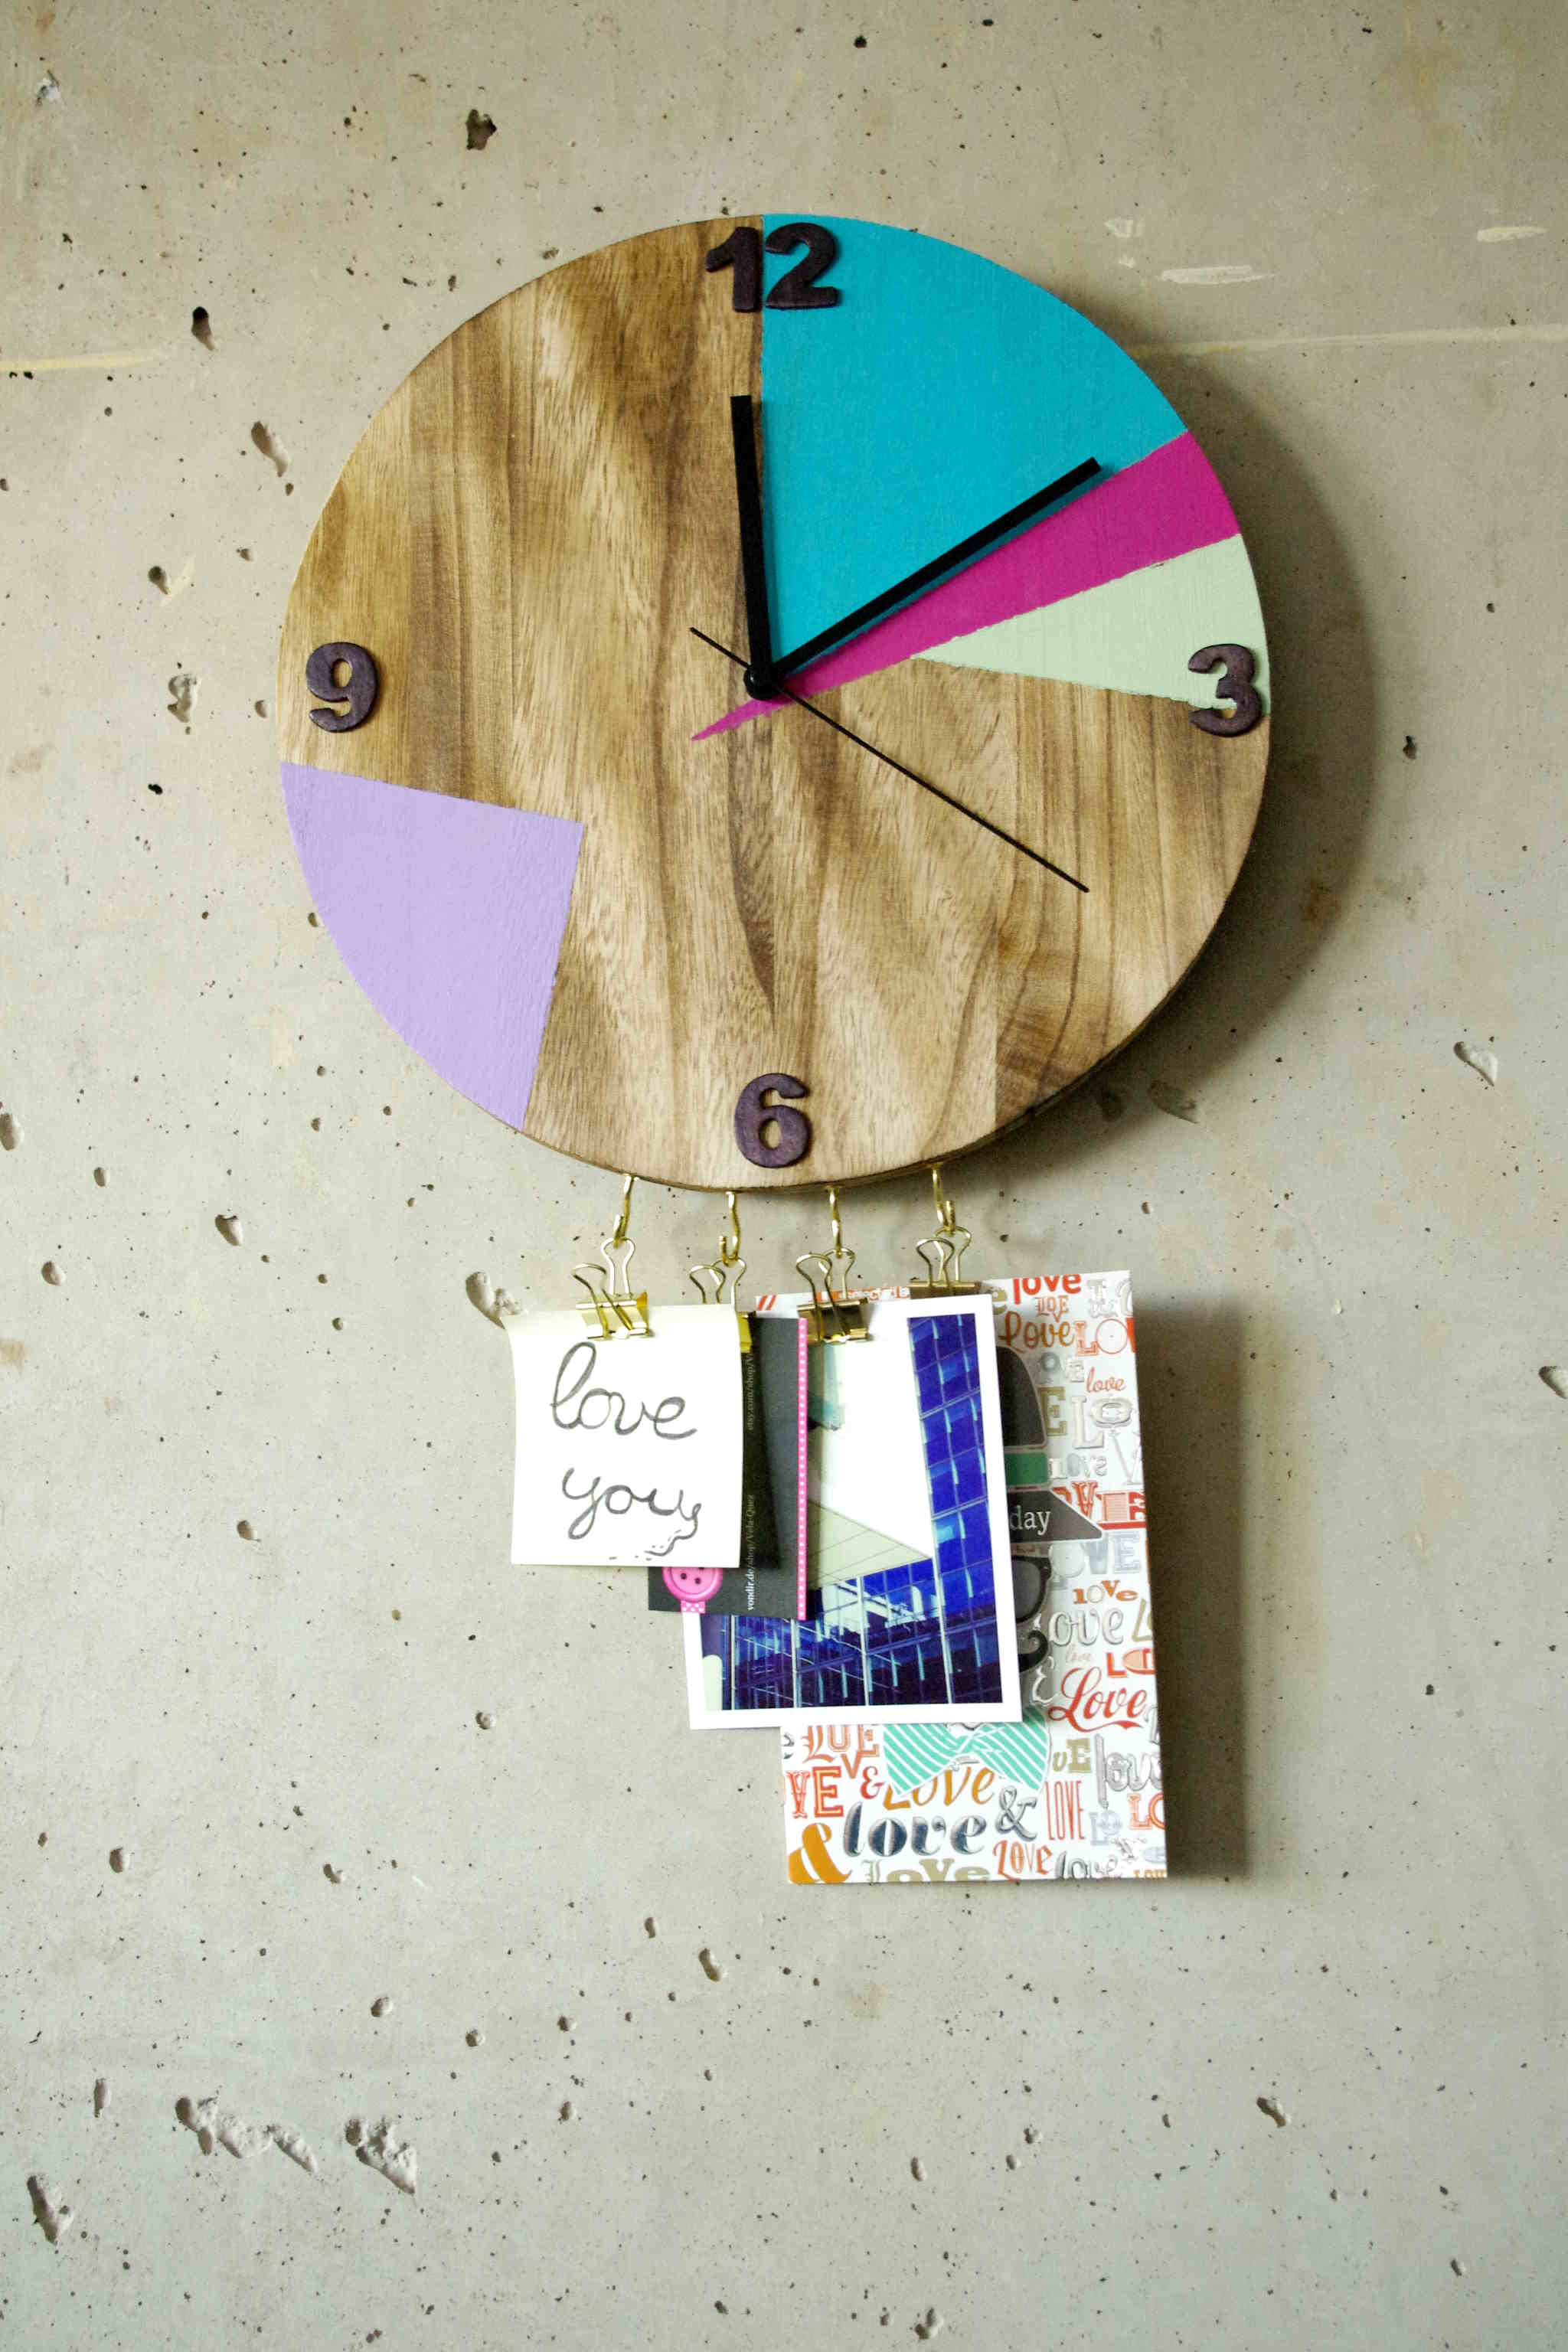 Wanduhr DIY mit Haken und Farbe – wall clock DIY with hooks and color